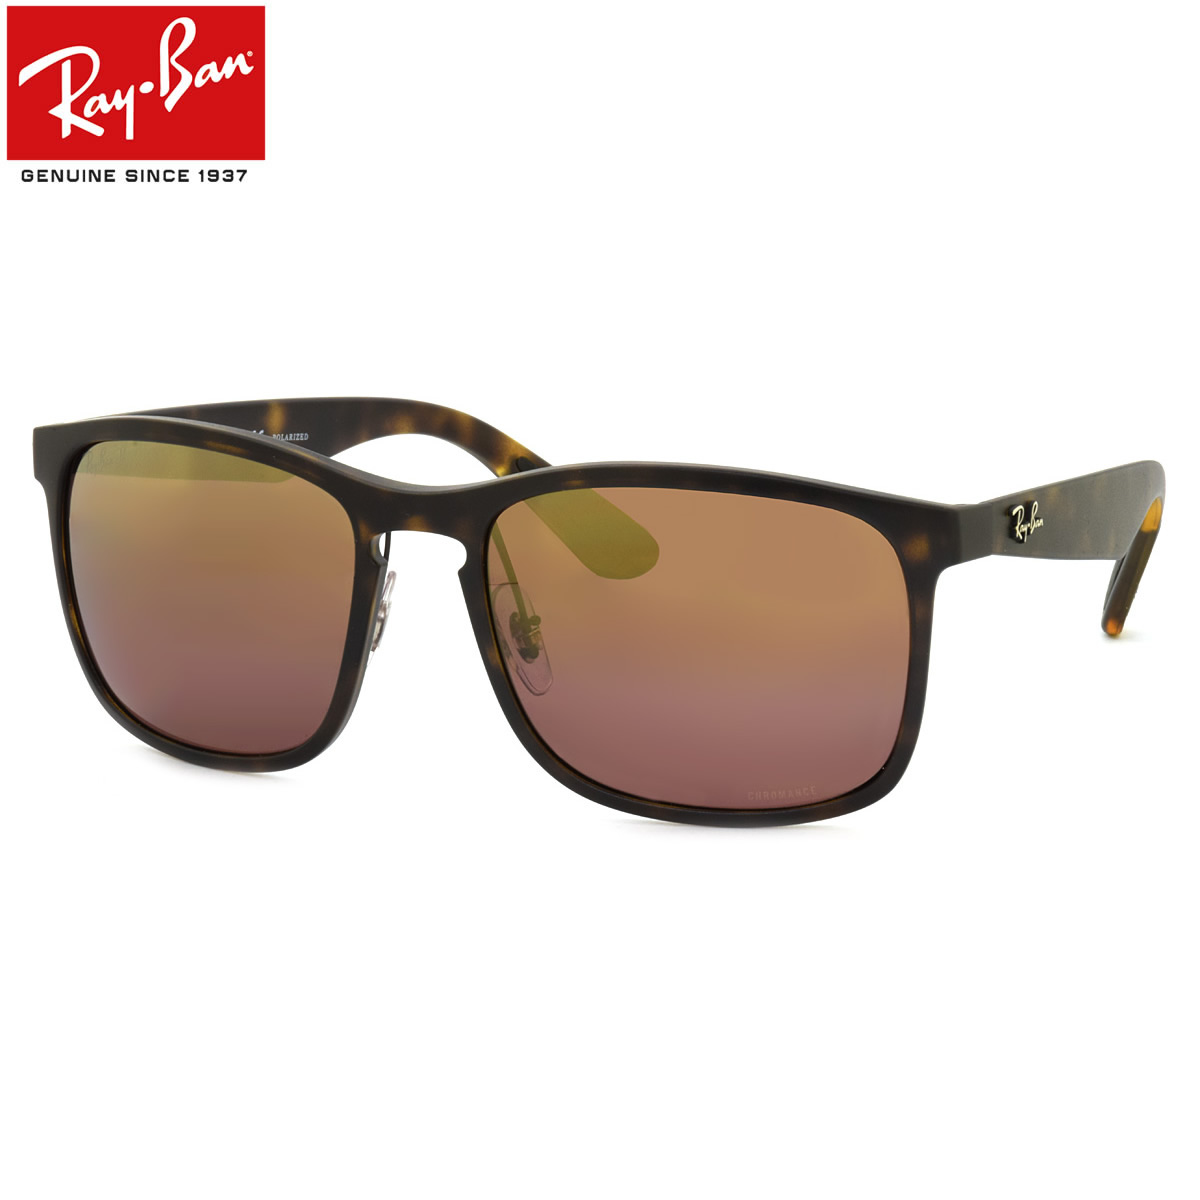 7d59268ef2 Ray Ban Rb4264 Chromance Reviews - Bitterroot Public Library